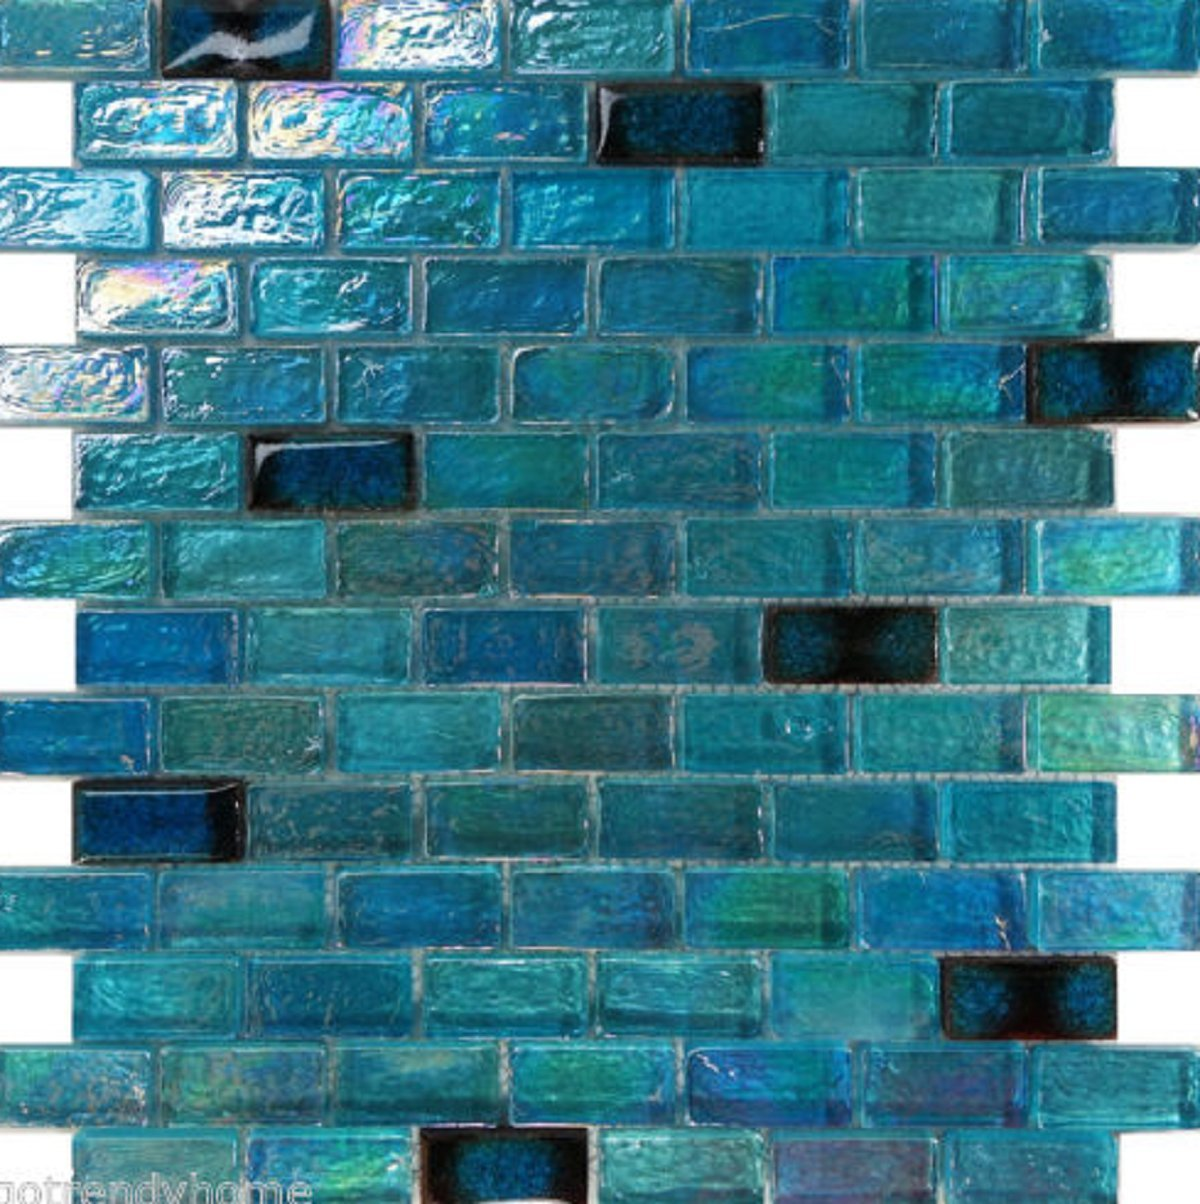 USA Premium Store 10SF Blue Iridescent Glass Mosaic Tile Kitchen Backsplash Faucet Pool Floor Sink by USA Premium Store